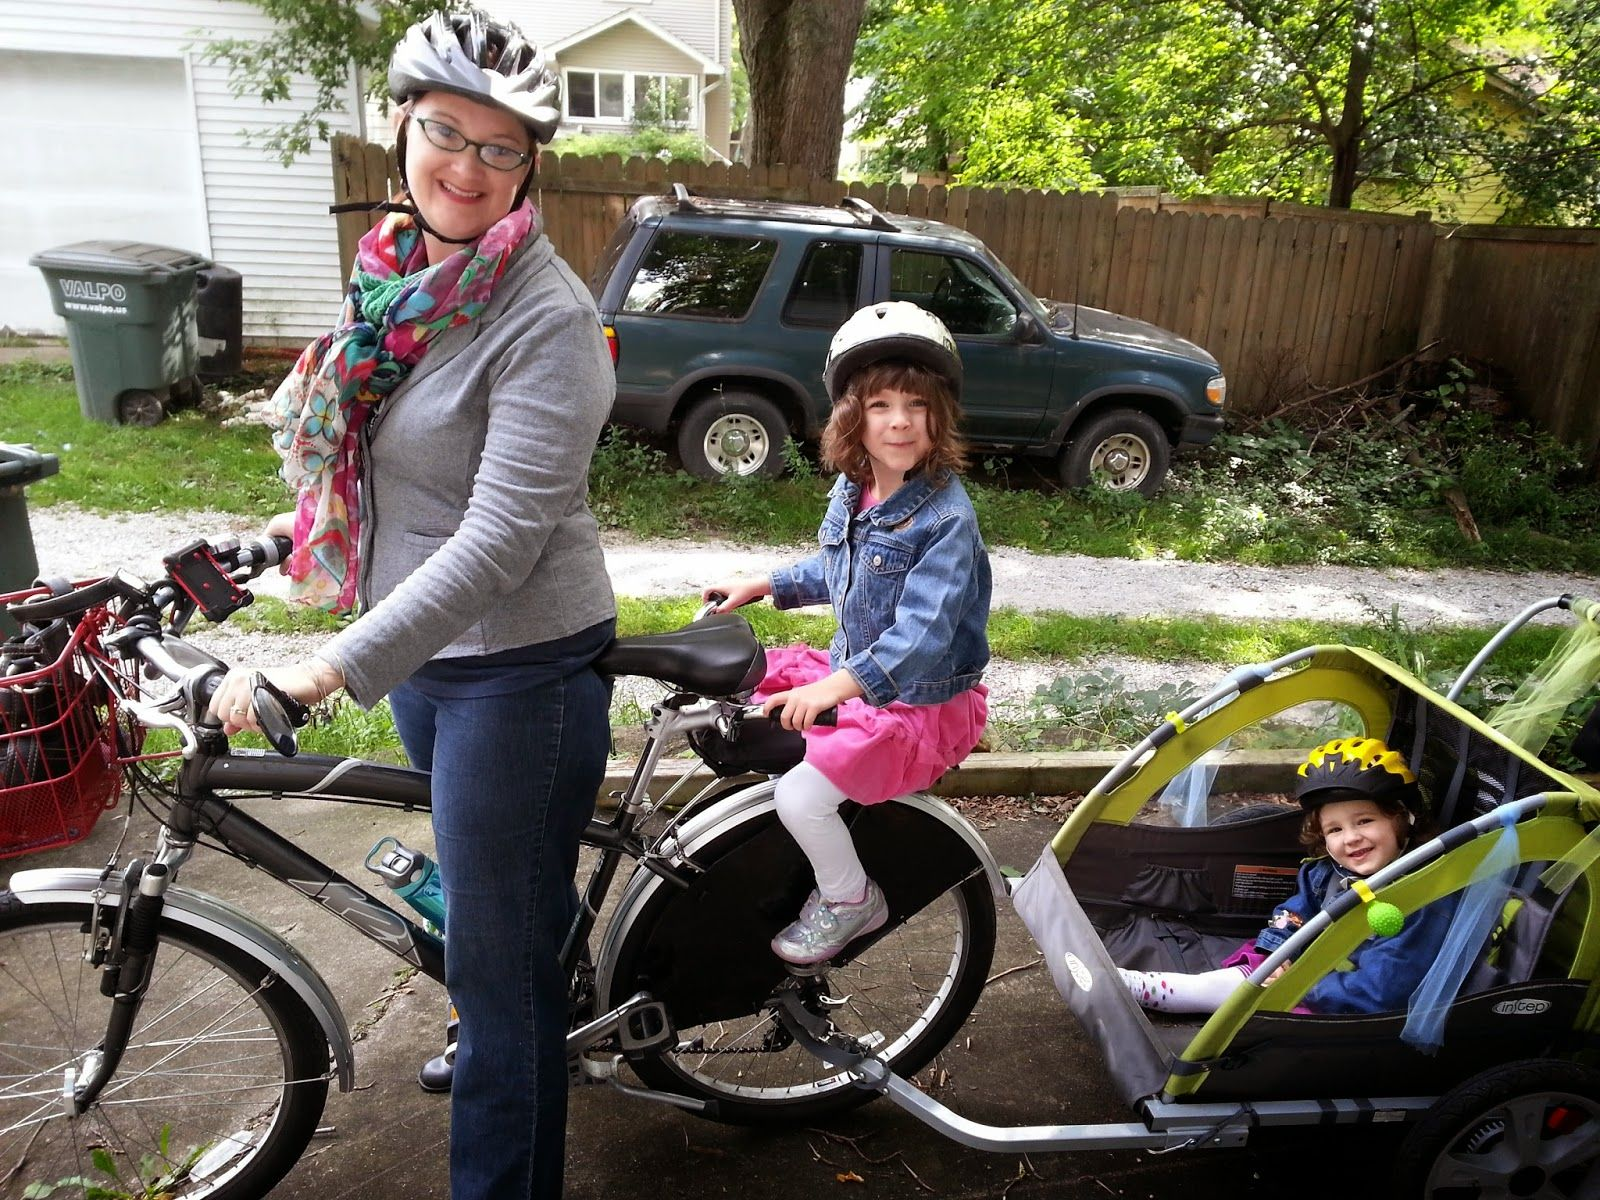 Diy Passenger Seat On Your Bicycle A Solution For Bigger Kids Kids Seating Cargo Bike Bicycle